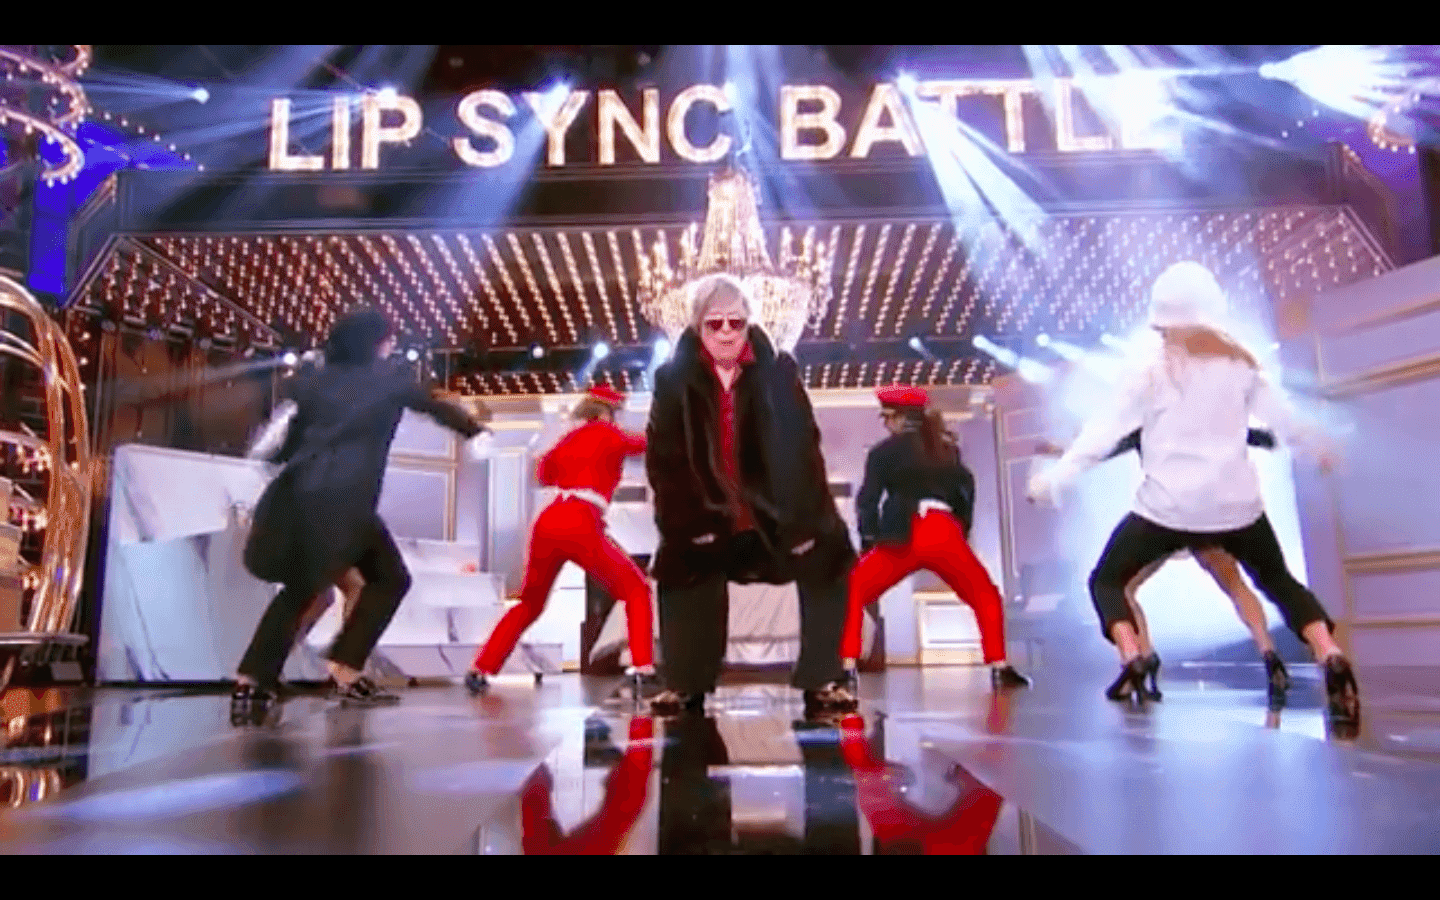 Kathy Bates takes to the Lip-sync battle stage. Image credit: Facebook/Lip-sync battle